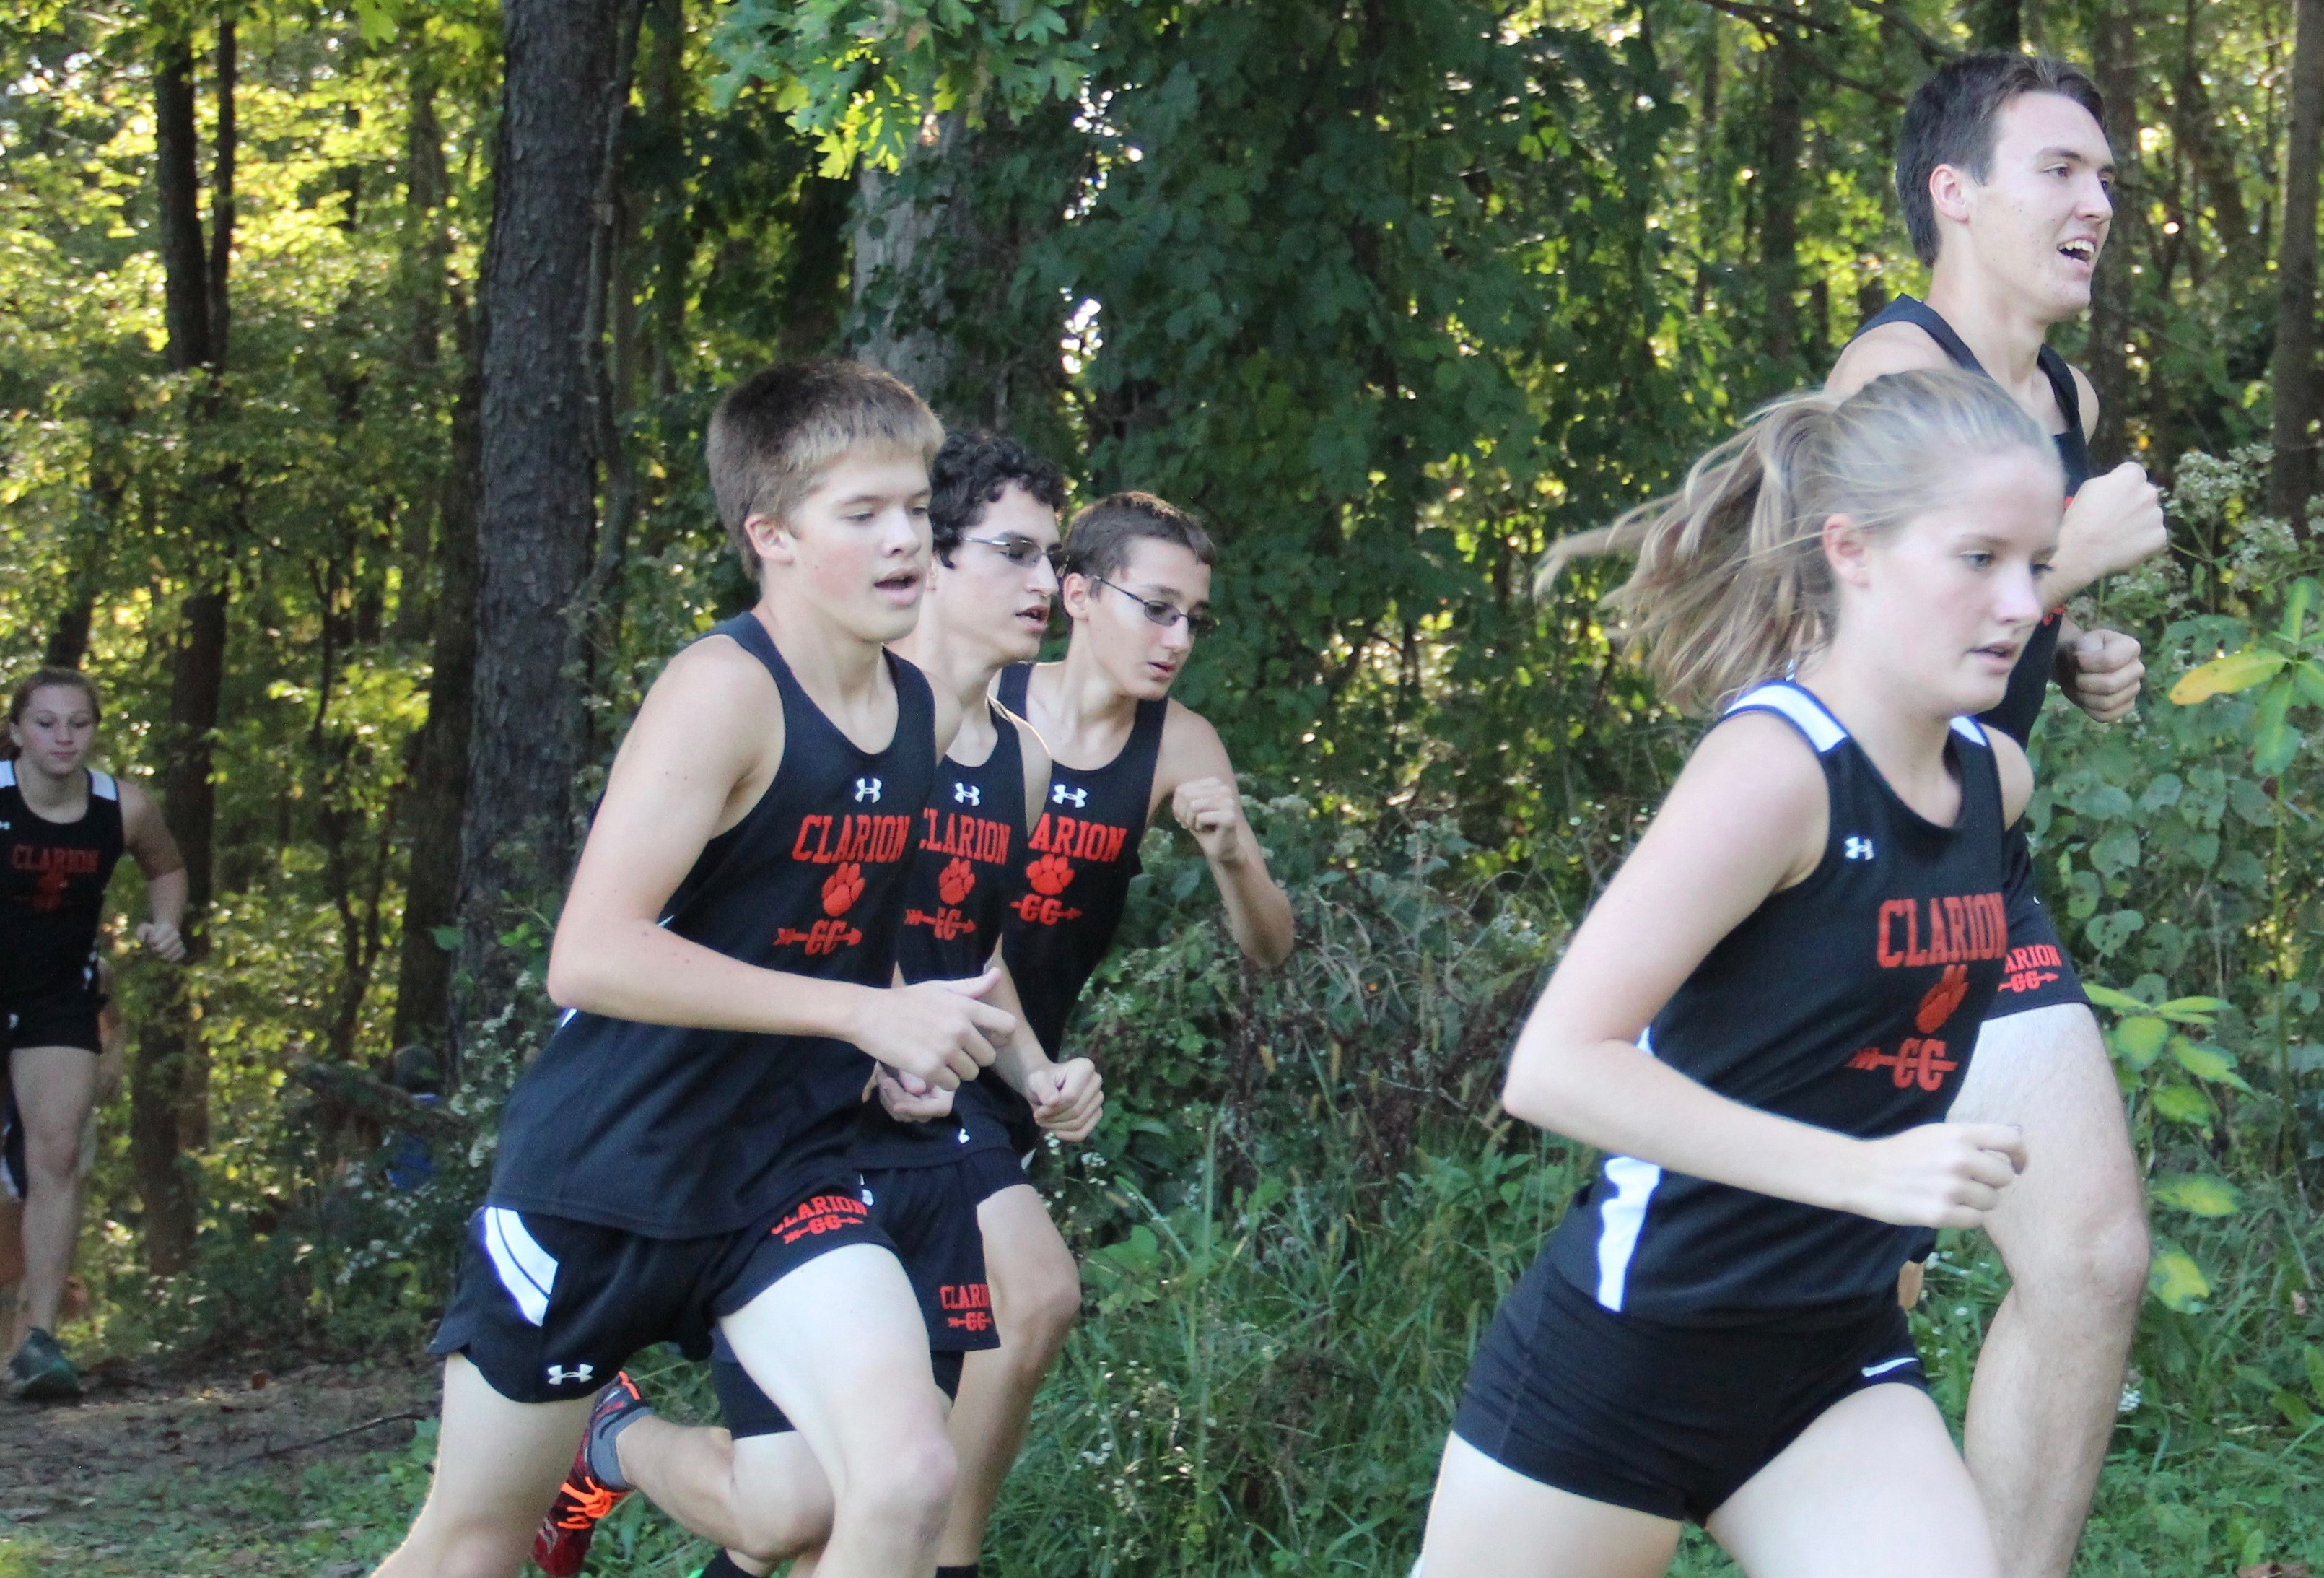 Clarion Cross Country